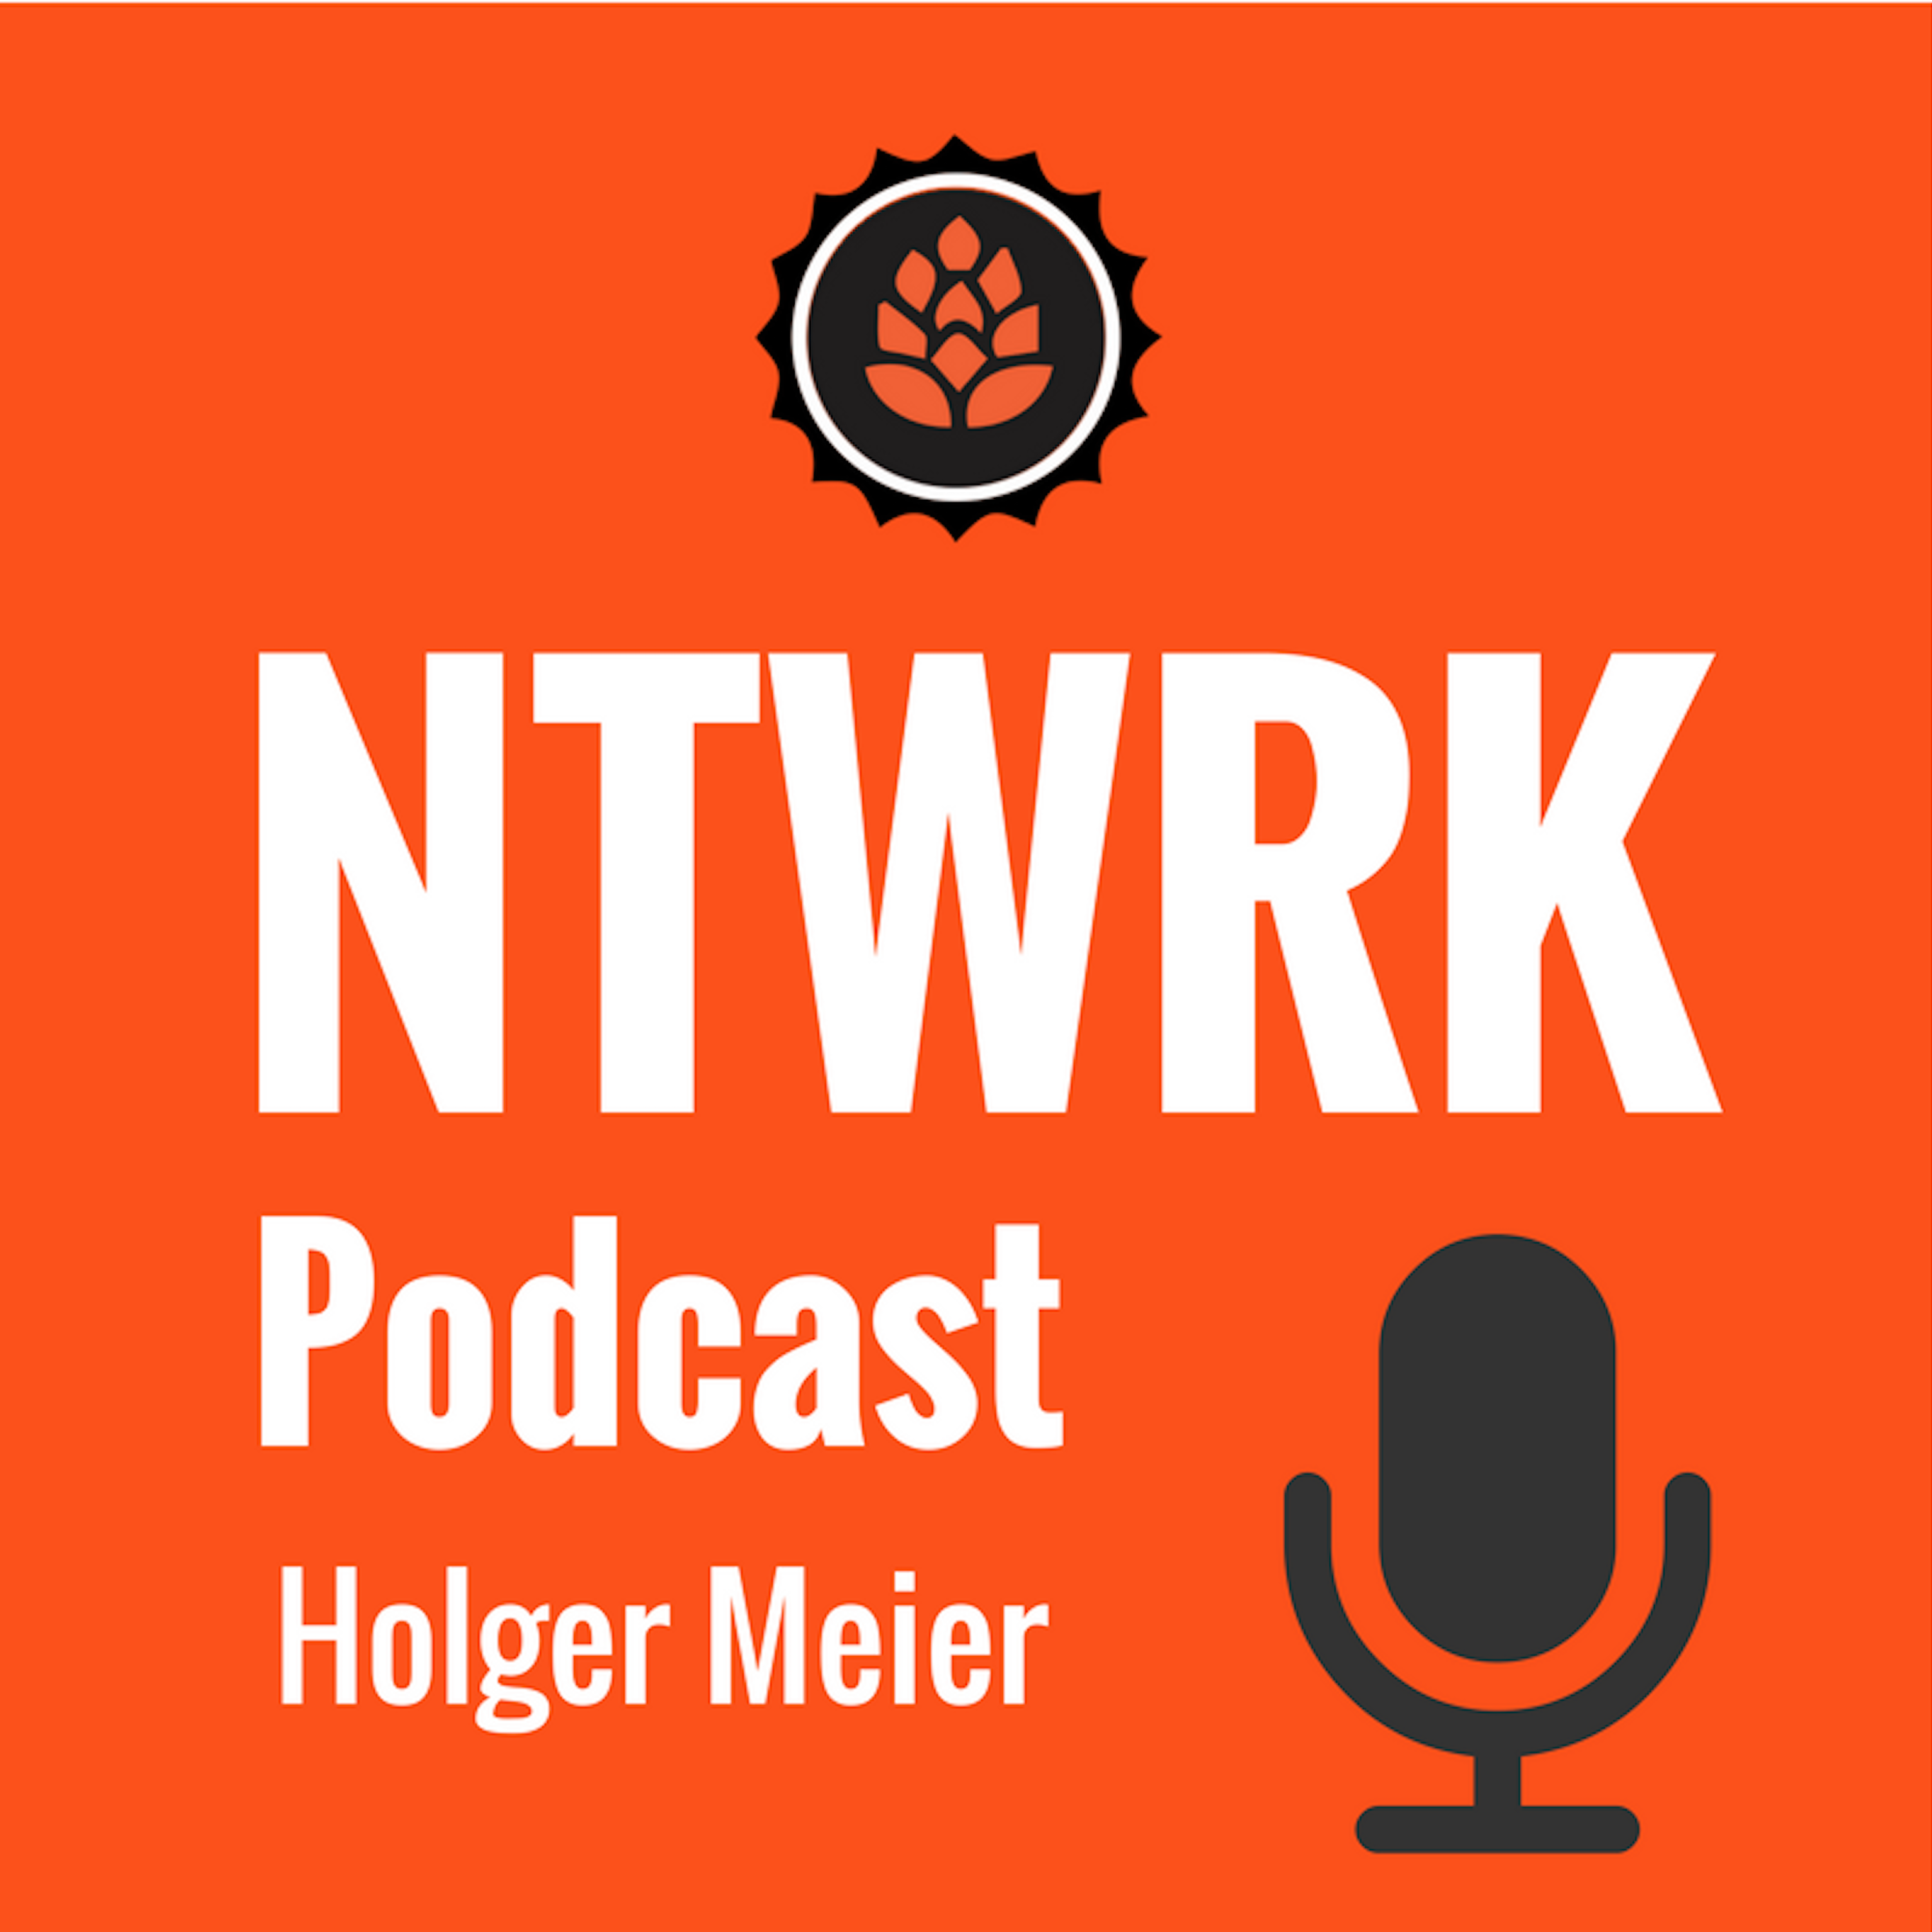 NTWRK Podcast with Holger Meier